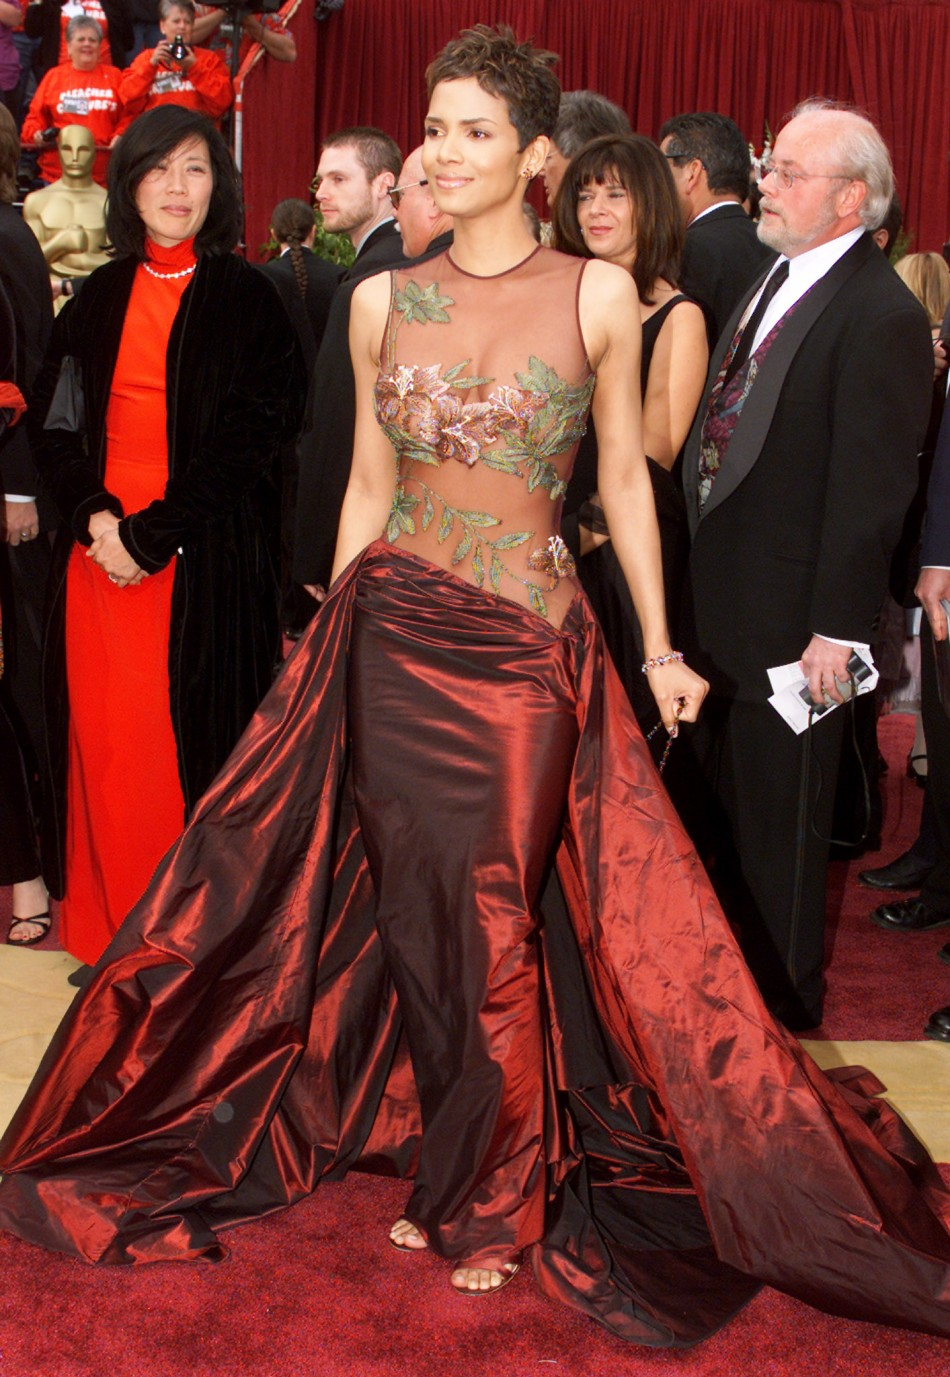 Sable Soldiers Lived The Declaration Of Independence During The U S Civil War likewise 1995 further Oscars 2013 Best Dressed Red Carpet Photos 438986 additionally Evolution Jake Gyllenhaal furthermore Kitty Wells Jon Lord Donald Sobol Covey 363830. on oscar best supporting actor 2012